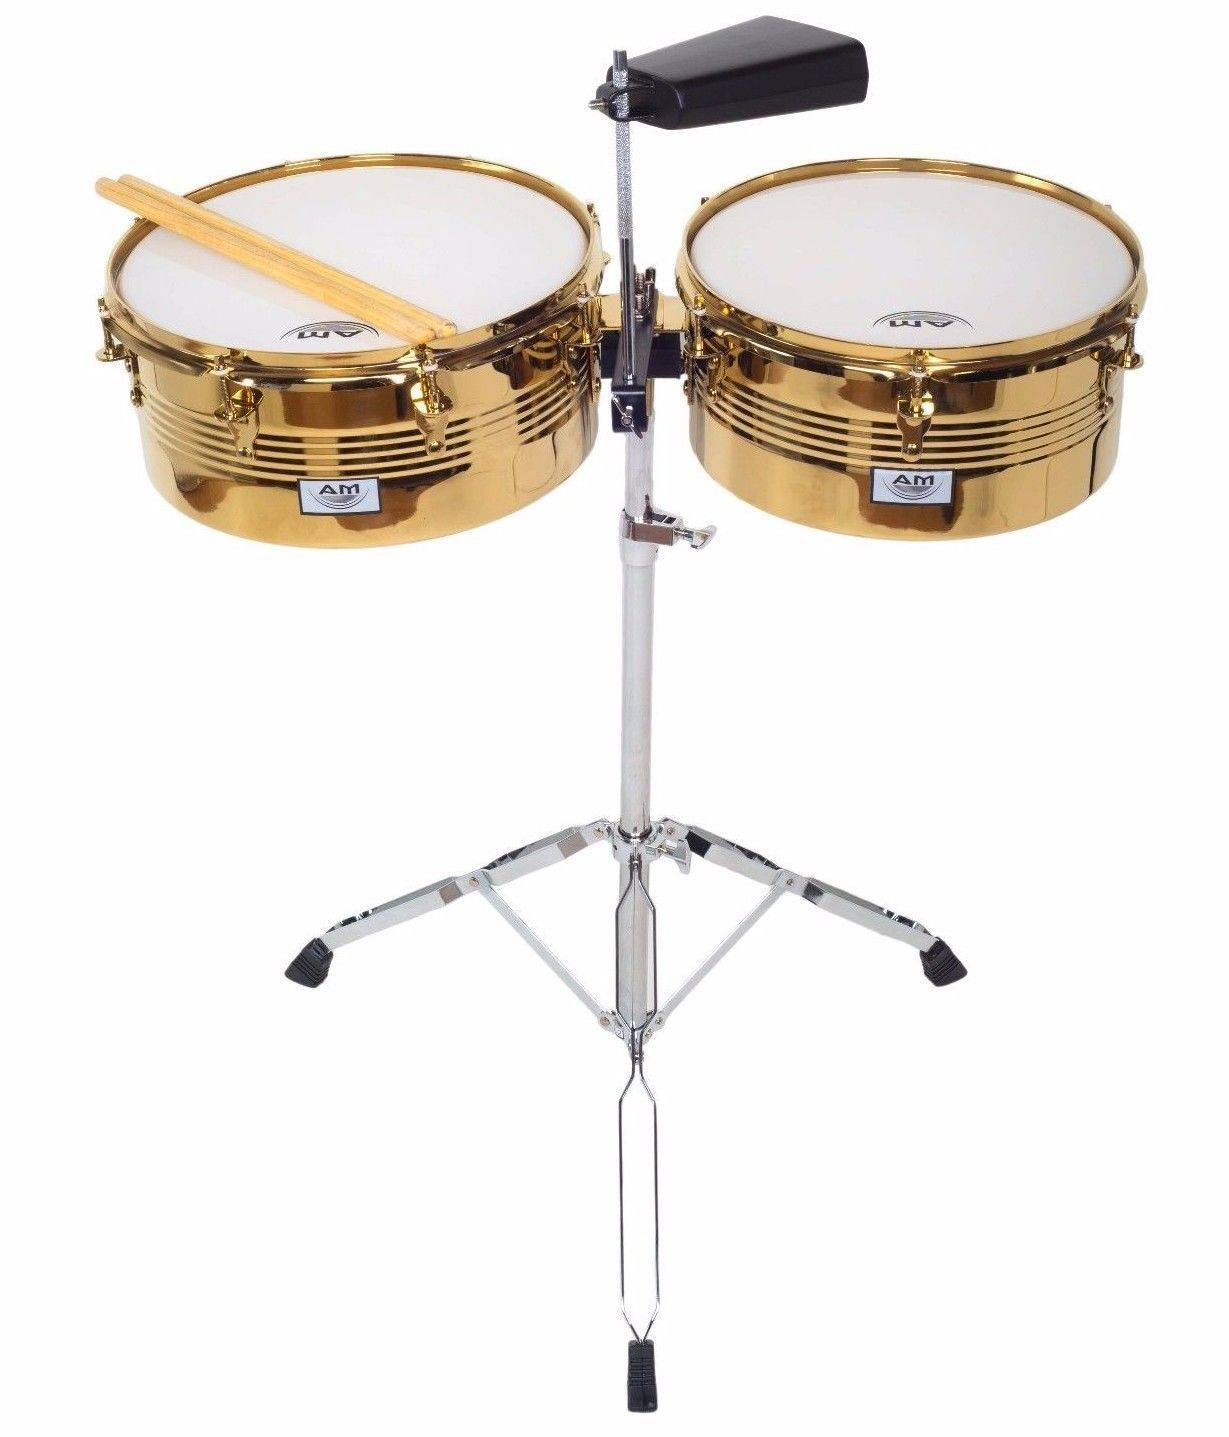 """AM Percussion 13"""" 14"""" Libre GX2 CHROME GOLD Timbale Kit with Stand and Cowbell by AM Percussion"""